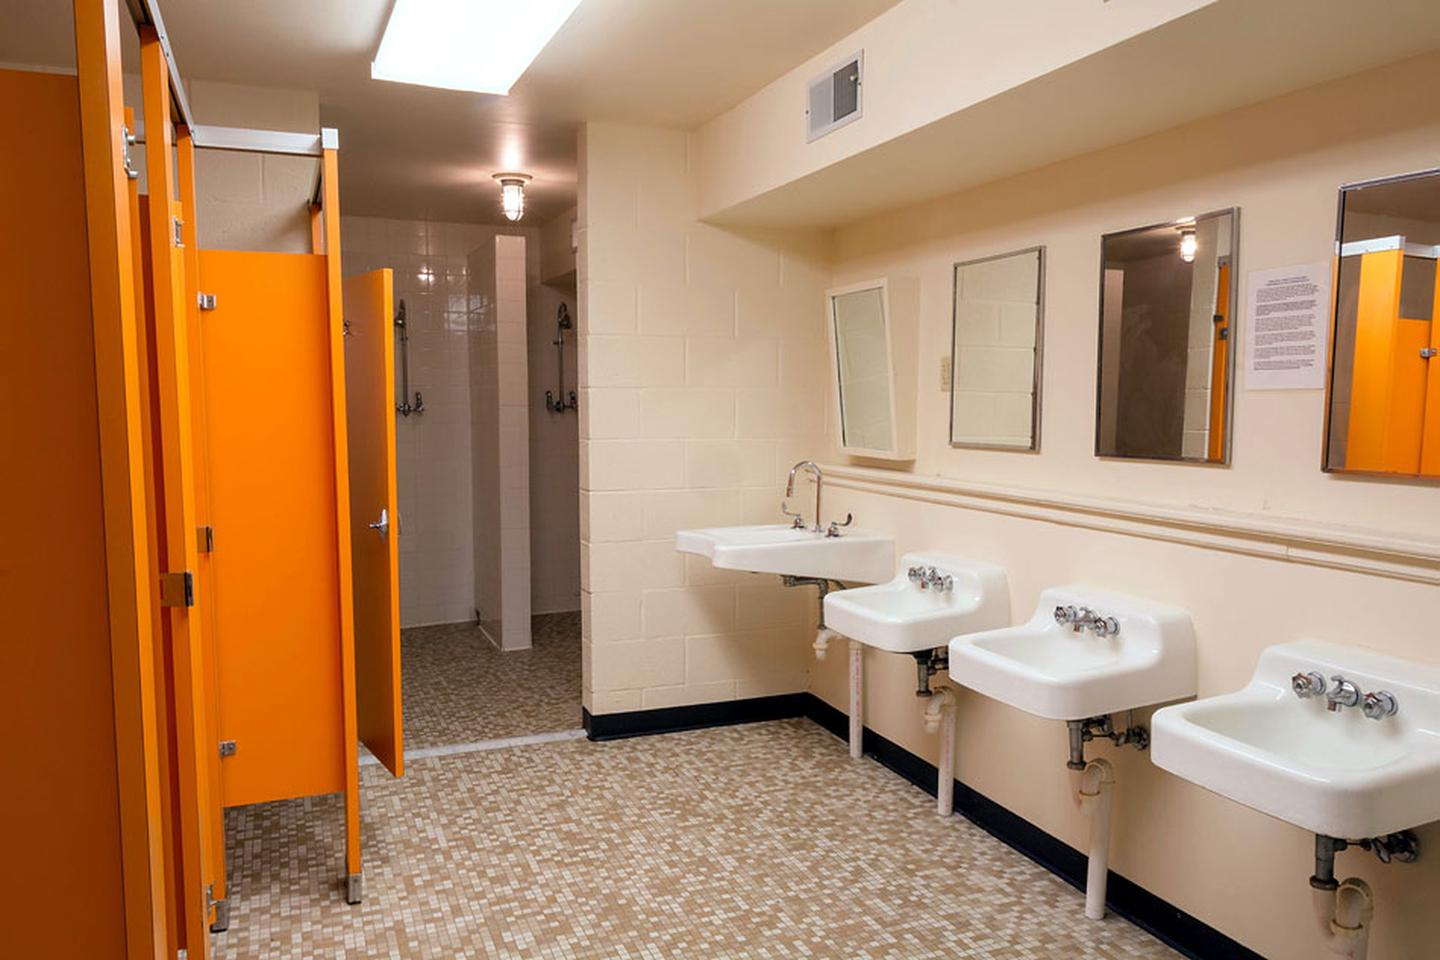 Gym women's bathroom. Tile floor, 4 wall mounted sinks below 4 mirrors. Left side, 4 orange toilet stalls. 4 tile shower stalls which have no door or curtain. The gym women's bathroom has 4 sinks, 4 toilet stalls, 4 mirrors and 5 shower stalls.  Shower stalls have no doors or curtains.  The men's bathroom has 2 urinals, 2 toilet stalls 3 sinks and 5 shower stalls.